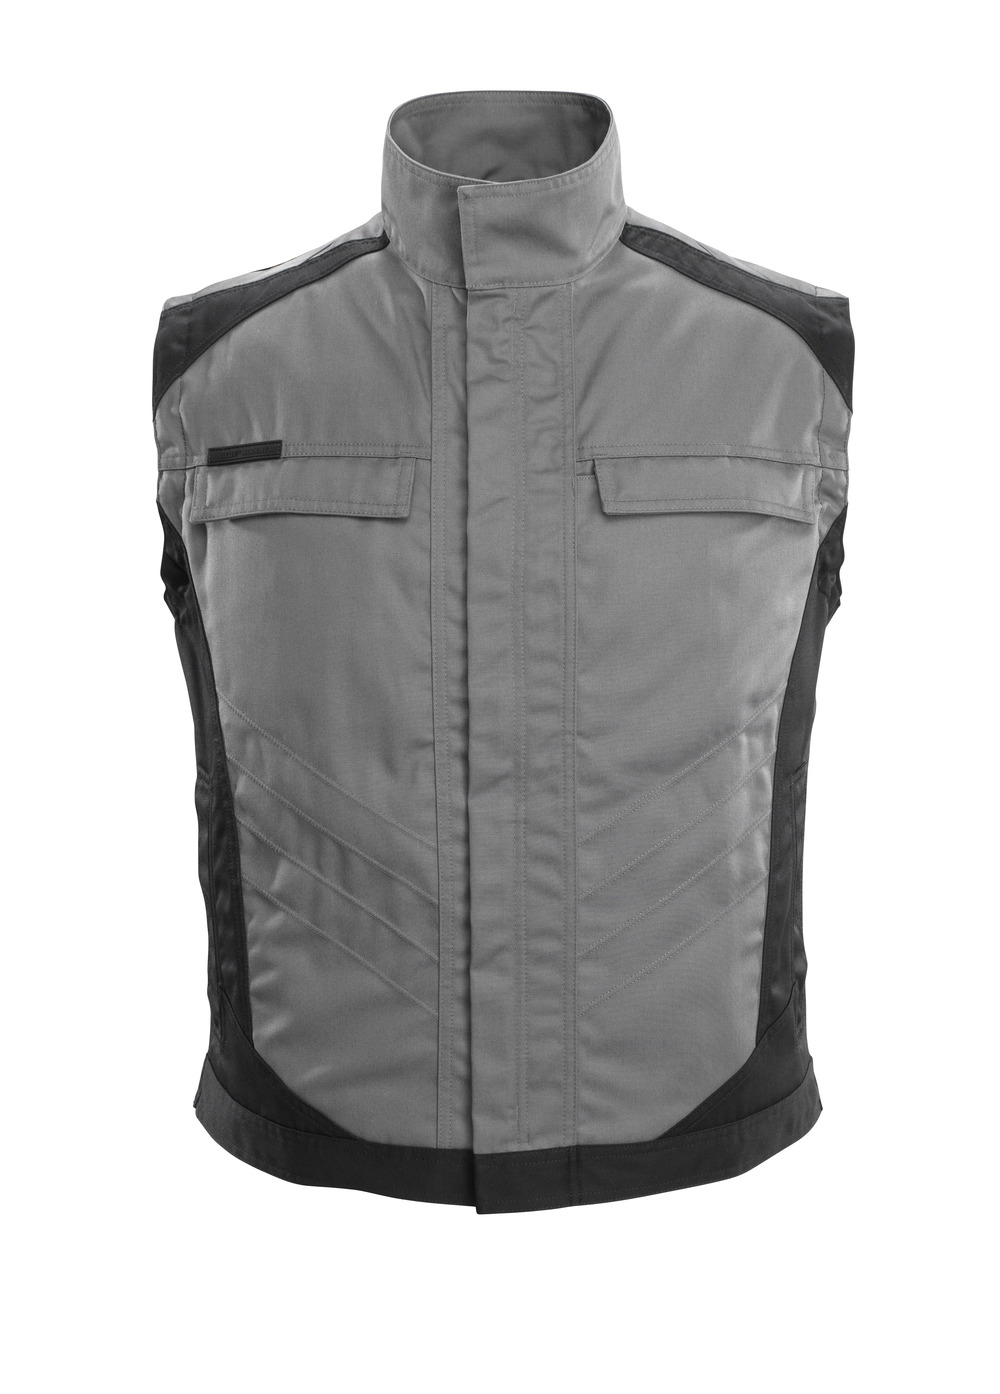 12254-442-88809 Vest - antracit/sort